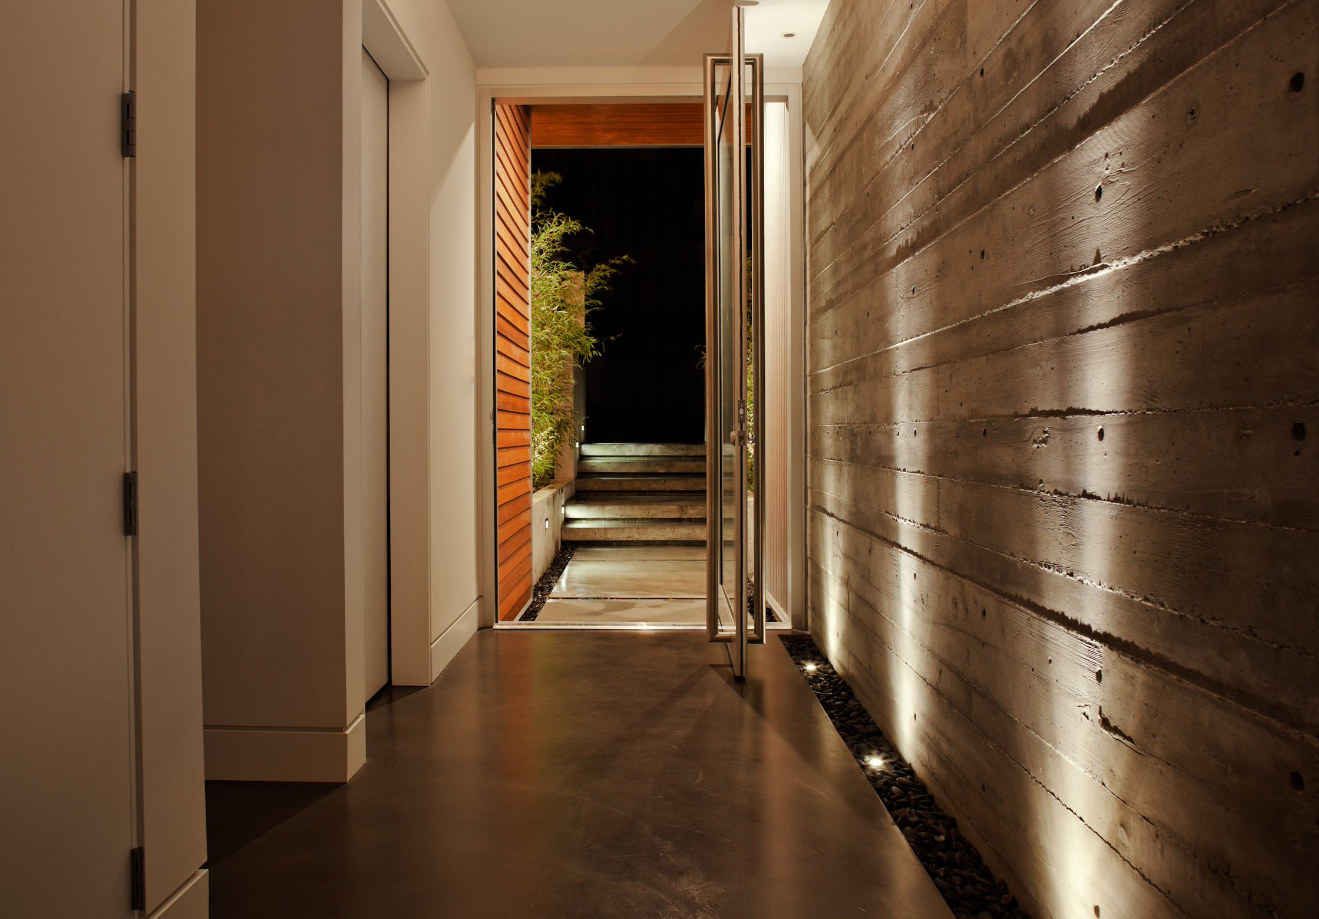 A beautiful example of a feature wall. The board formed concrete makes a bold statement. The material is very textural, spiking curiosity and asking to be touched. The wall is pulled away from the floor and separated by stones. While the floor is also concrete, the wall is distinctly different. The up lighting highlights the wall and further emphasizes its significance.